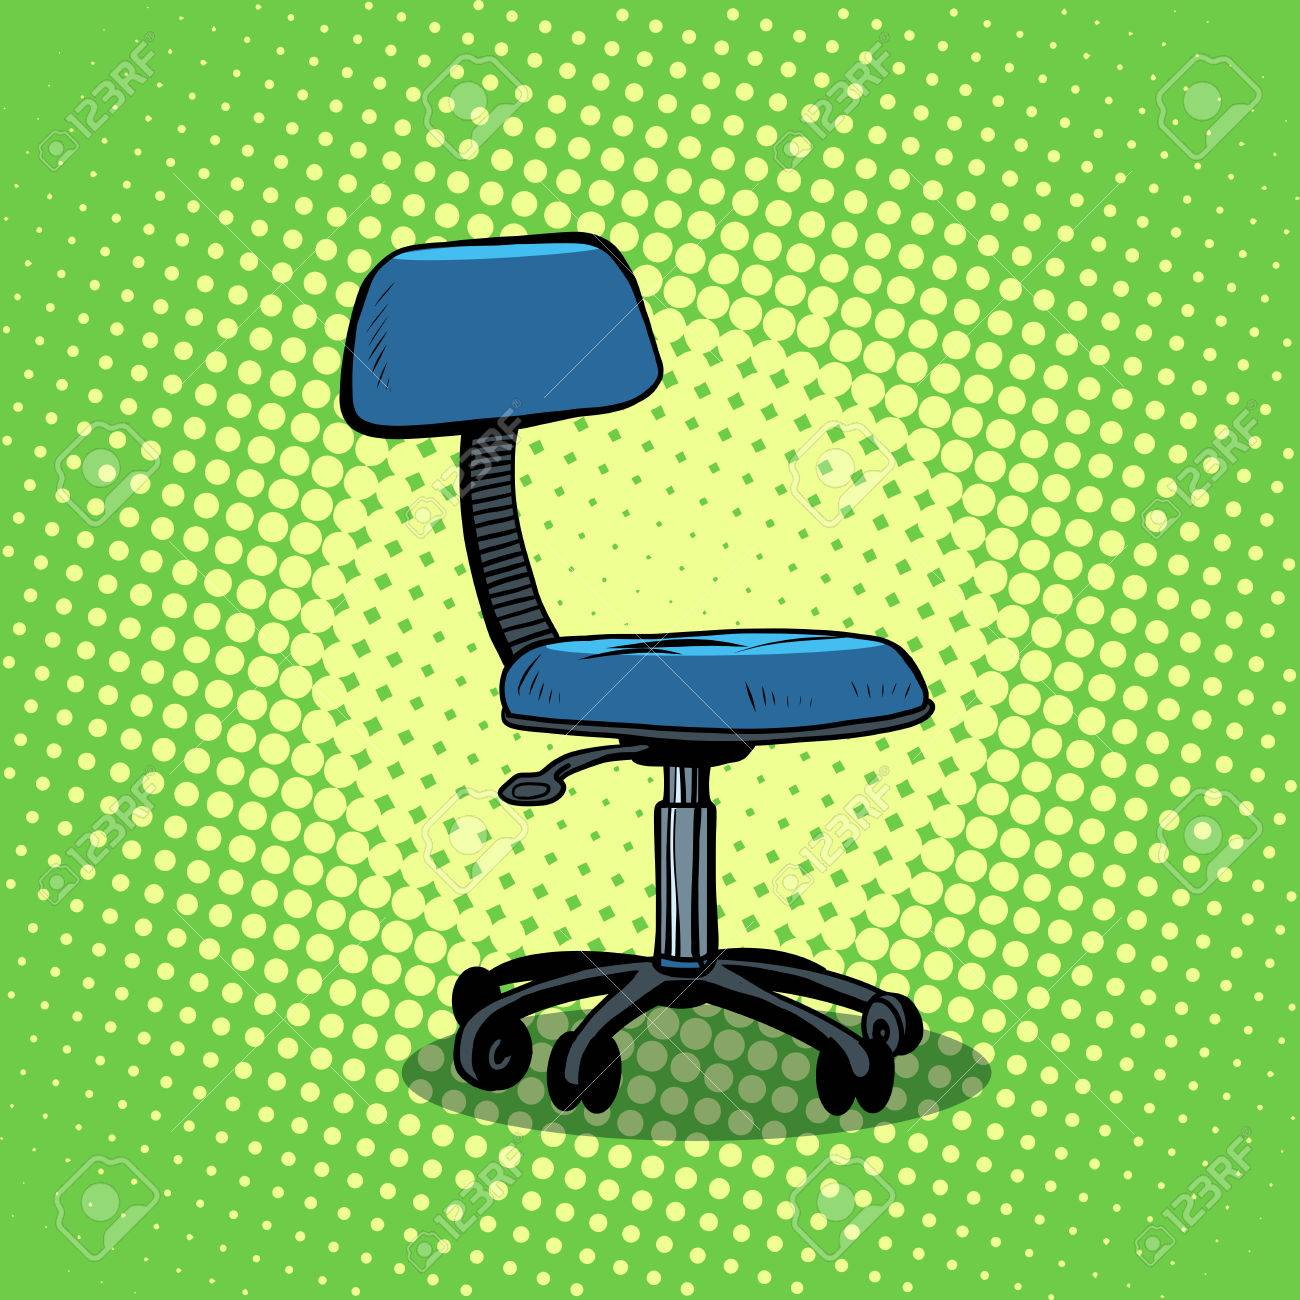 office chair furniture pop art style retro a chair on wheels